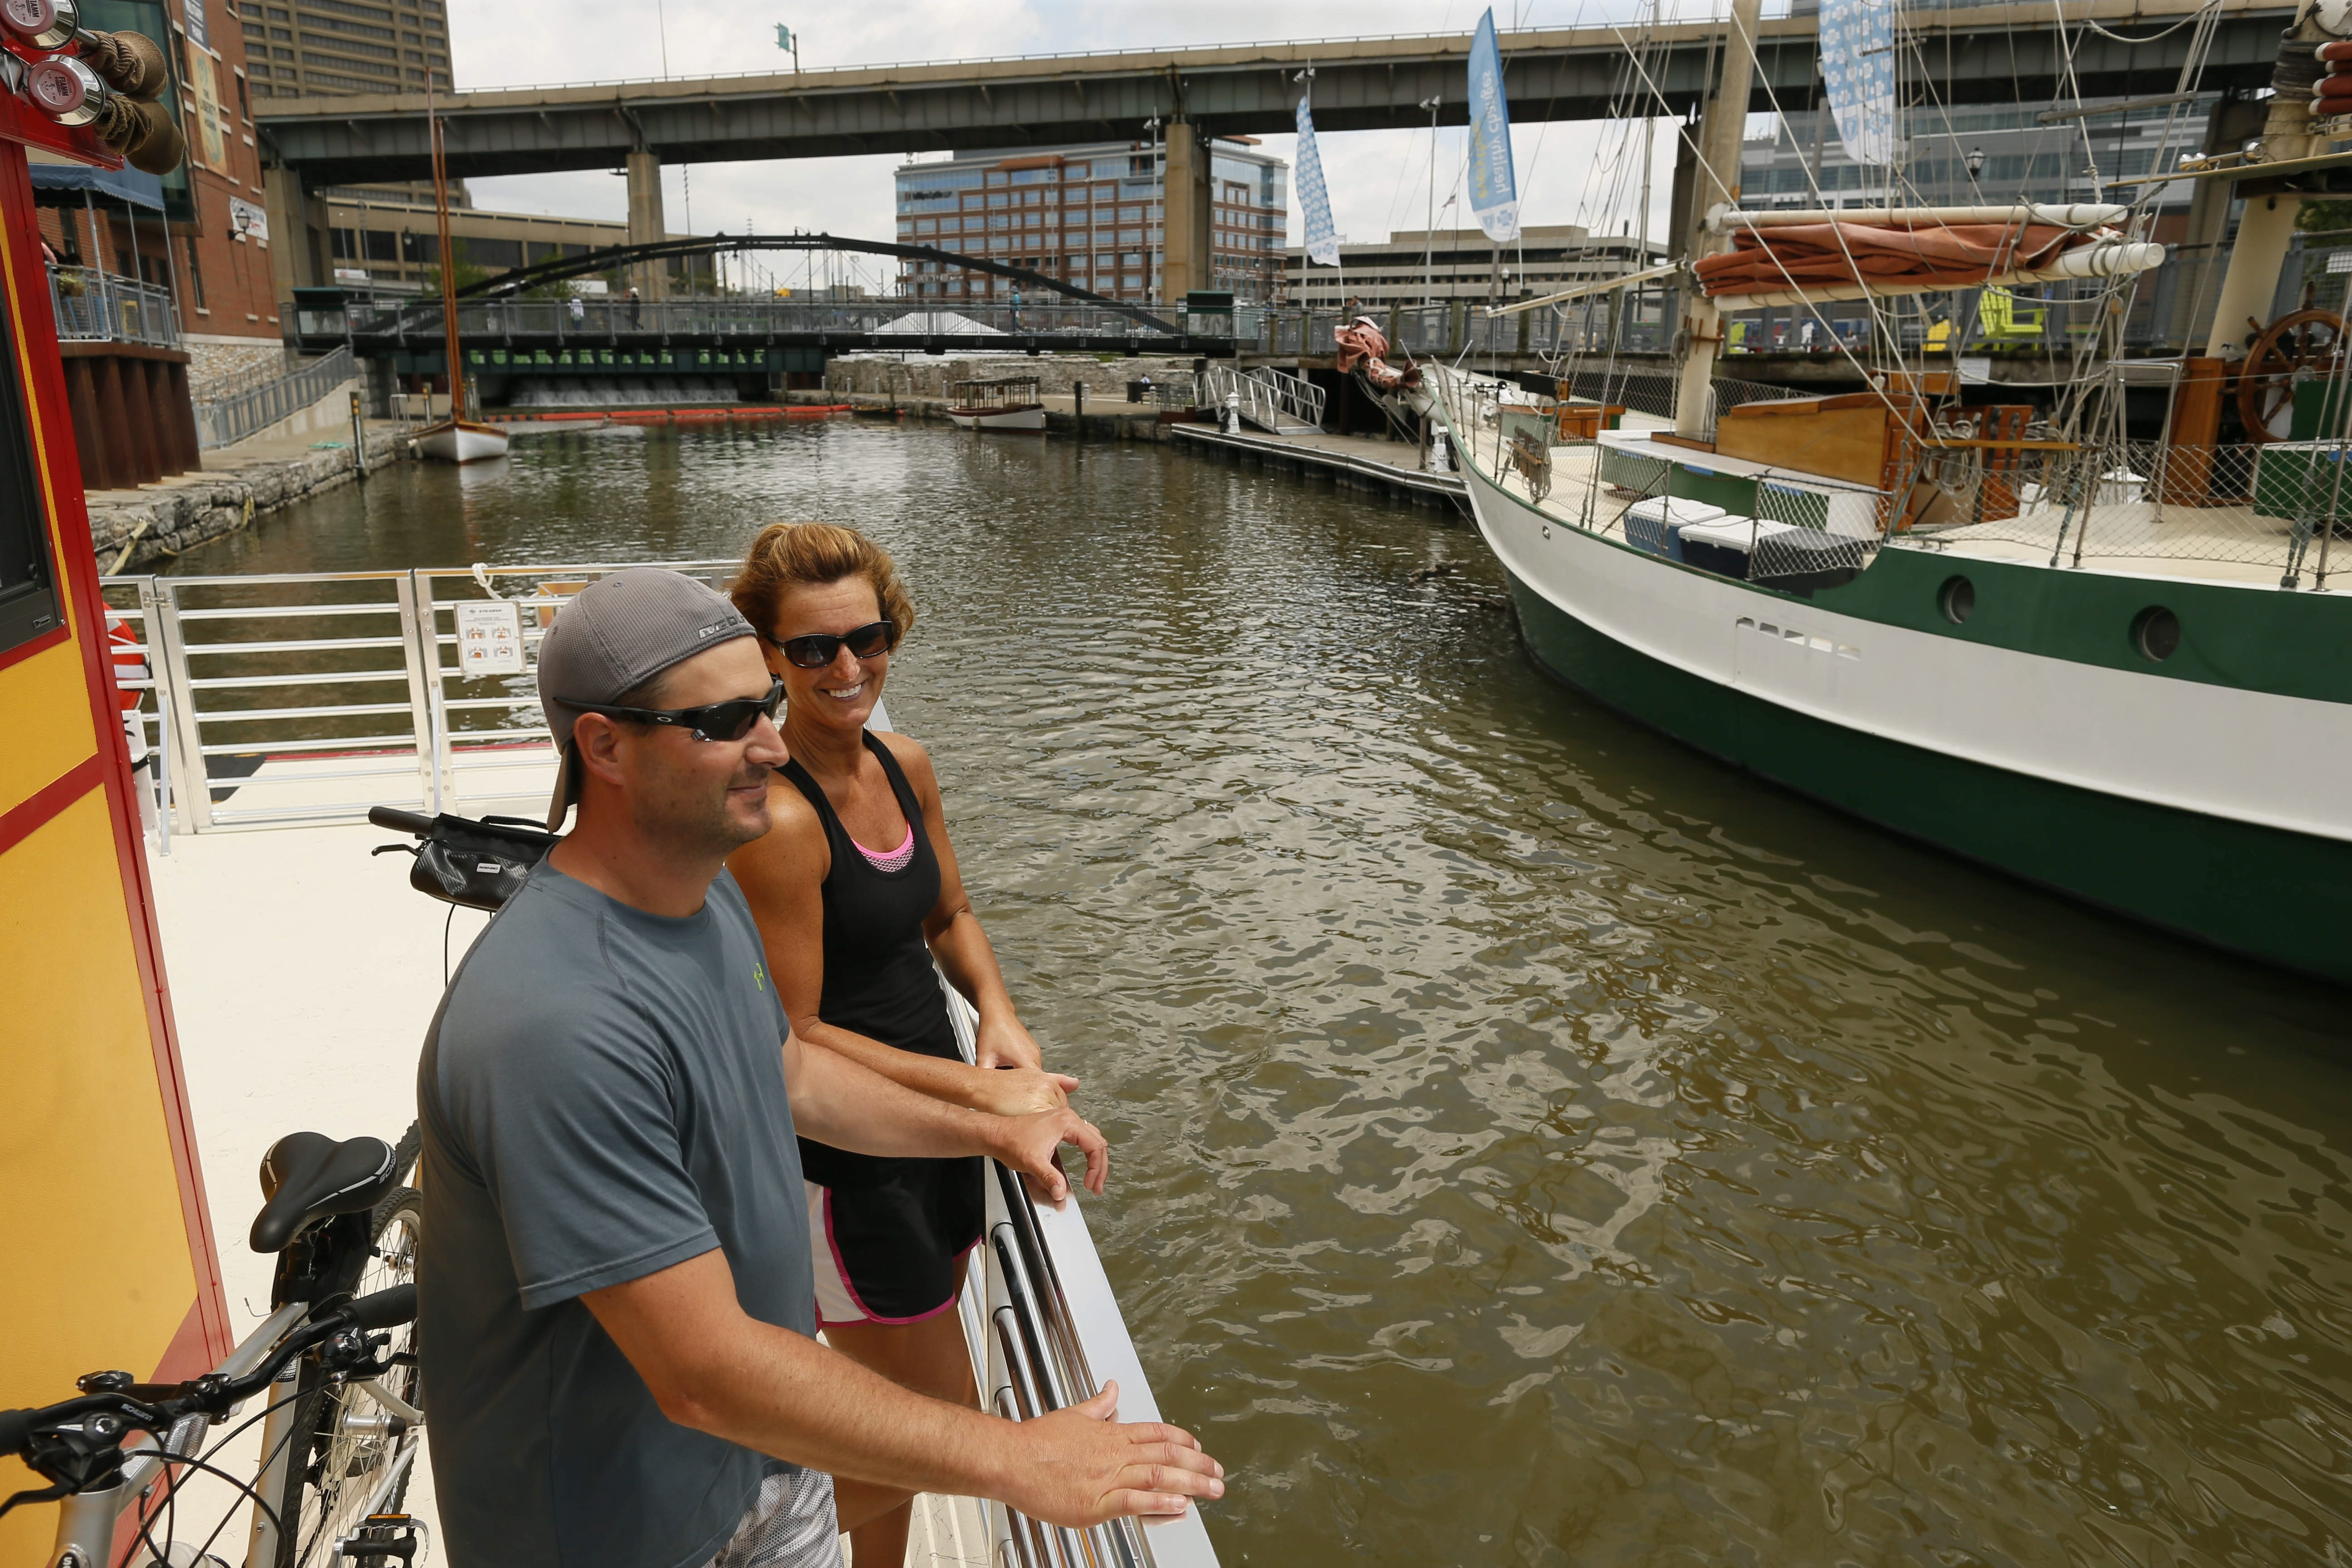 Tim and Jen Creighton ride the new bike ferry across the Buffalo River from Canalside to the Outer Harbor on Tuesday, June 16, 2015.